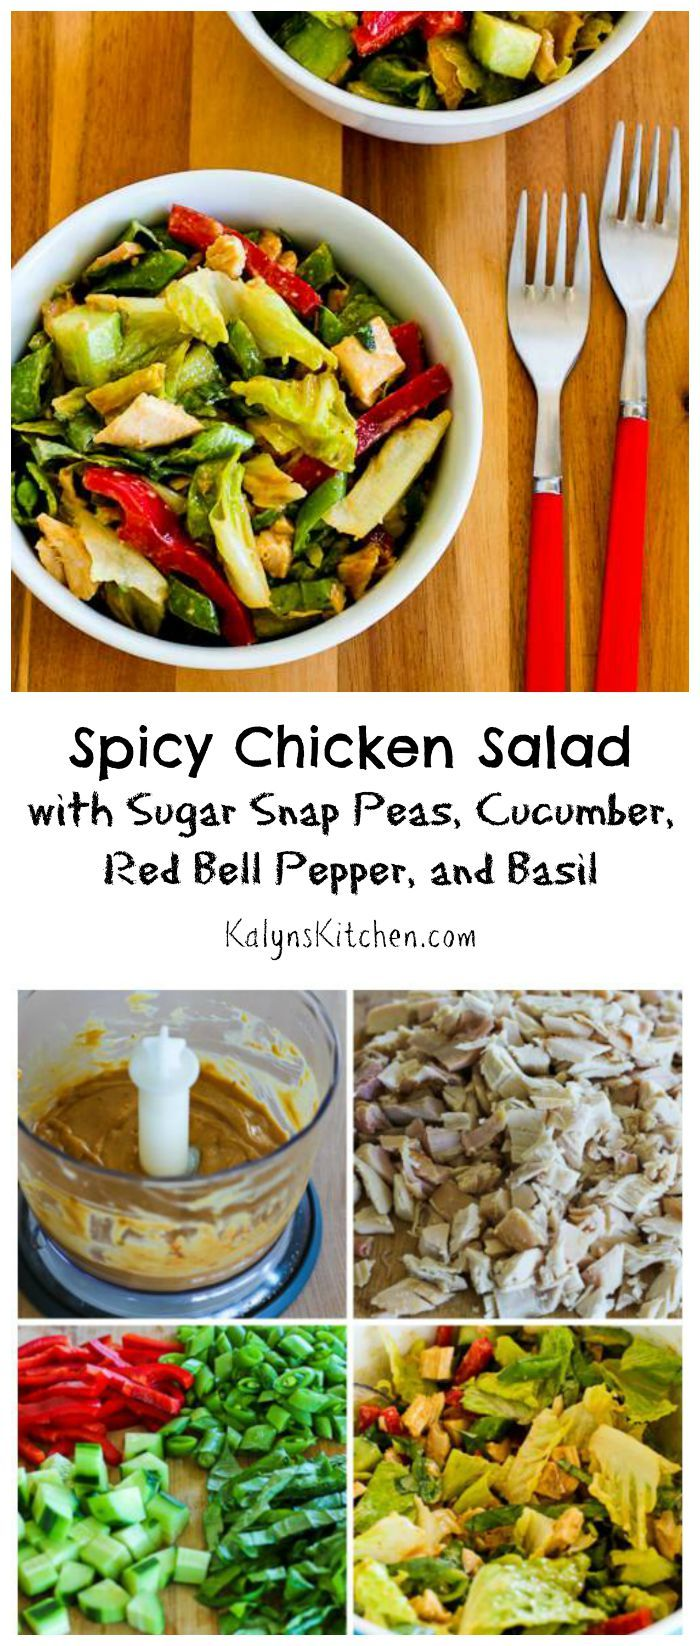 ... Red Bell Pepper, and Basil. It's the spicy peanut butter dressing that